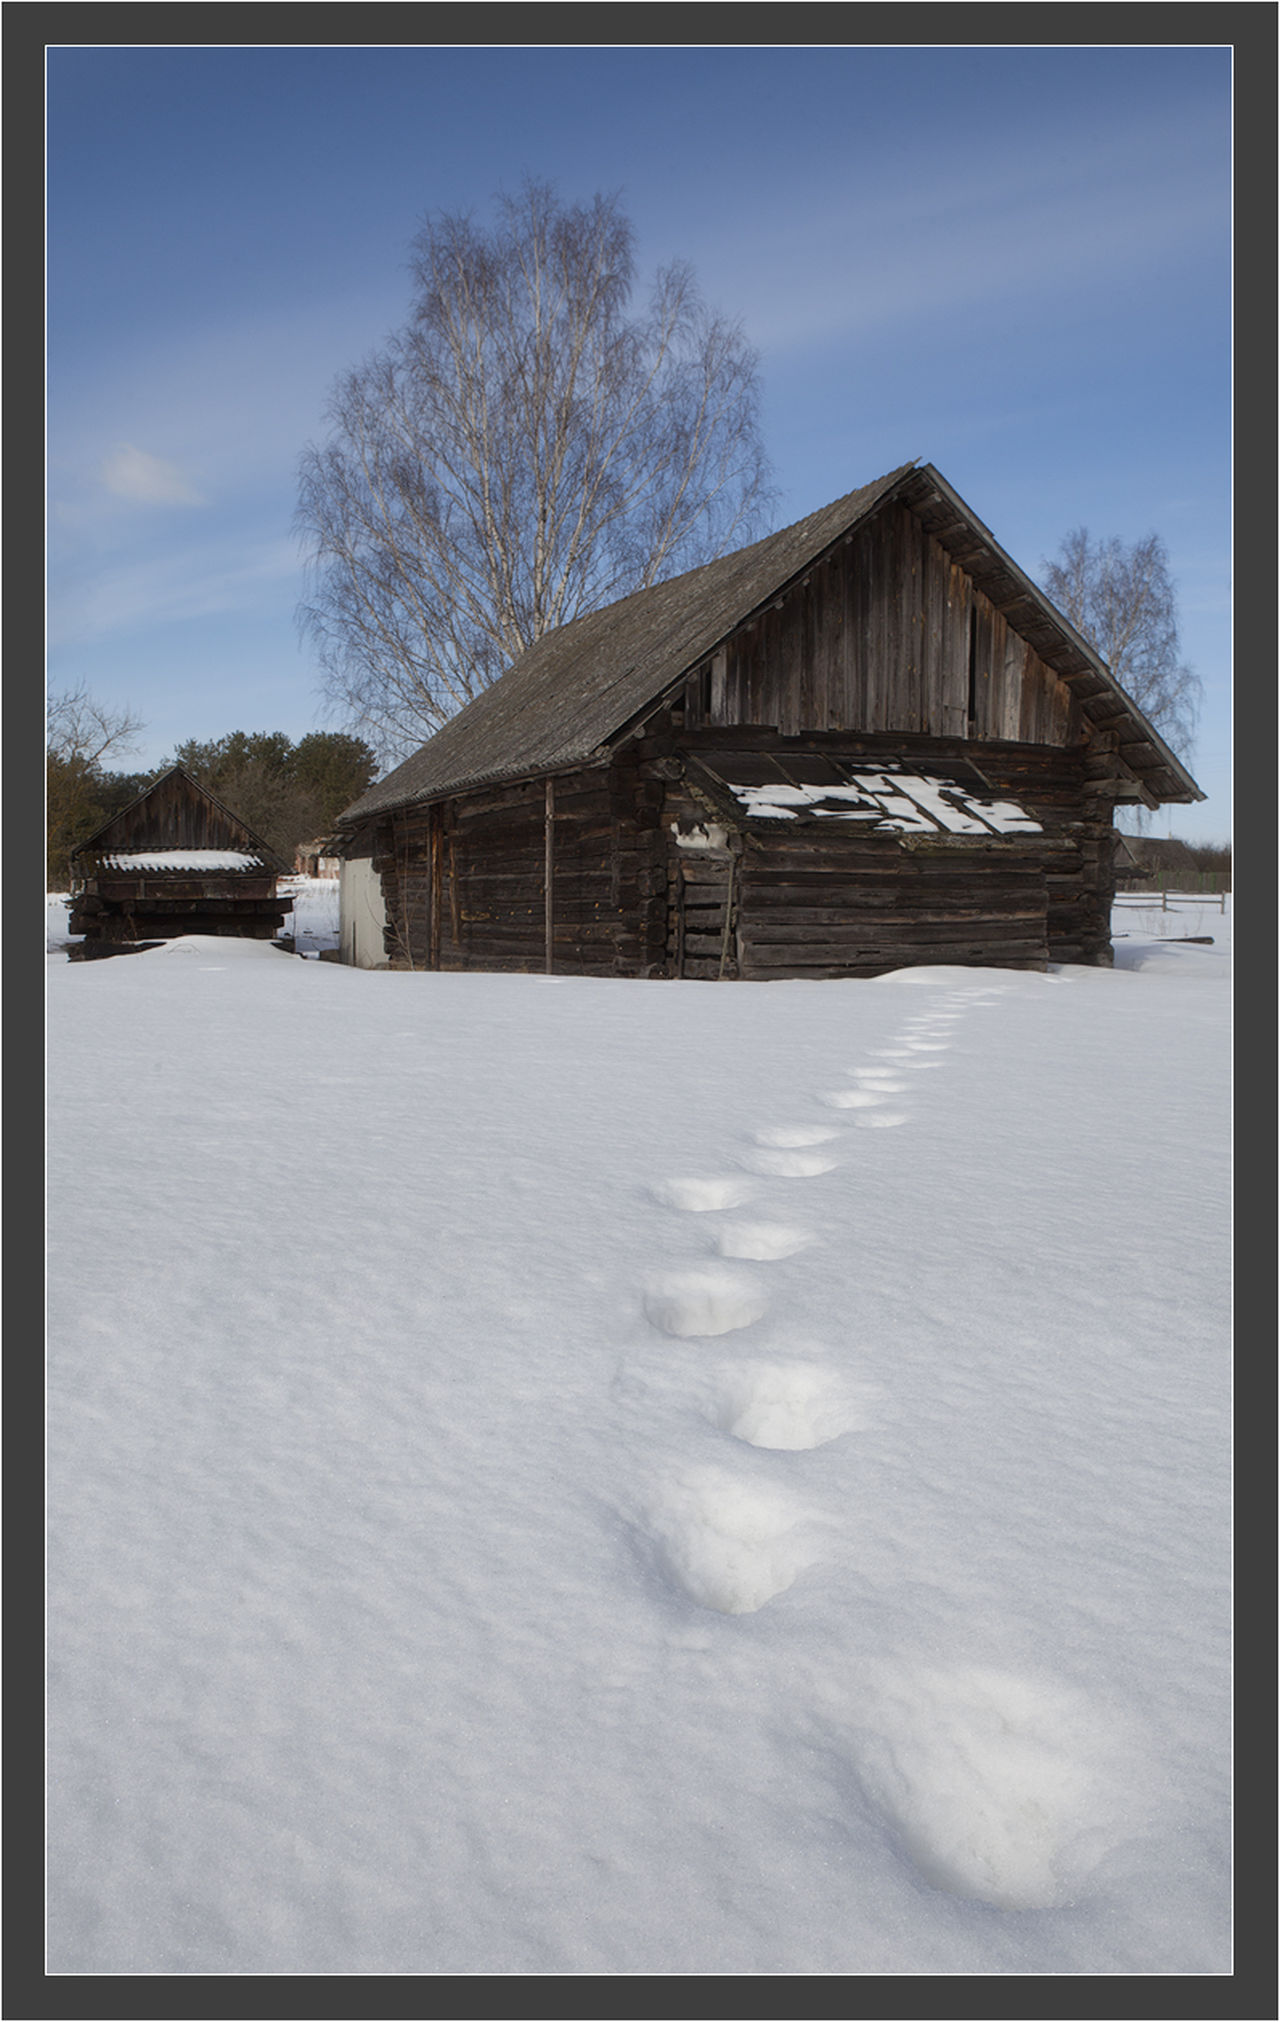 Winter Snow ❄ Snow Belorussia Belorussian Nature Snow❄⛄ House Tree Sky Day Nature Tranquil Scene Outdoors No People Season  Cold Temperature Canon 5D Mk II Canon 5D Mark II Canon EF 100-400 L IS USM